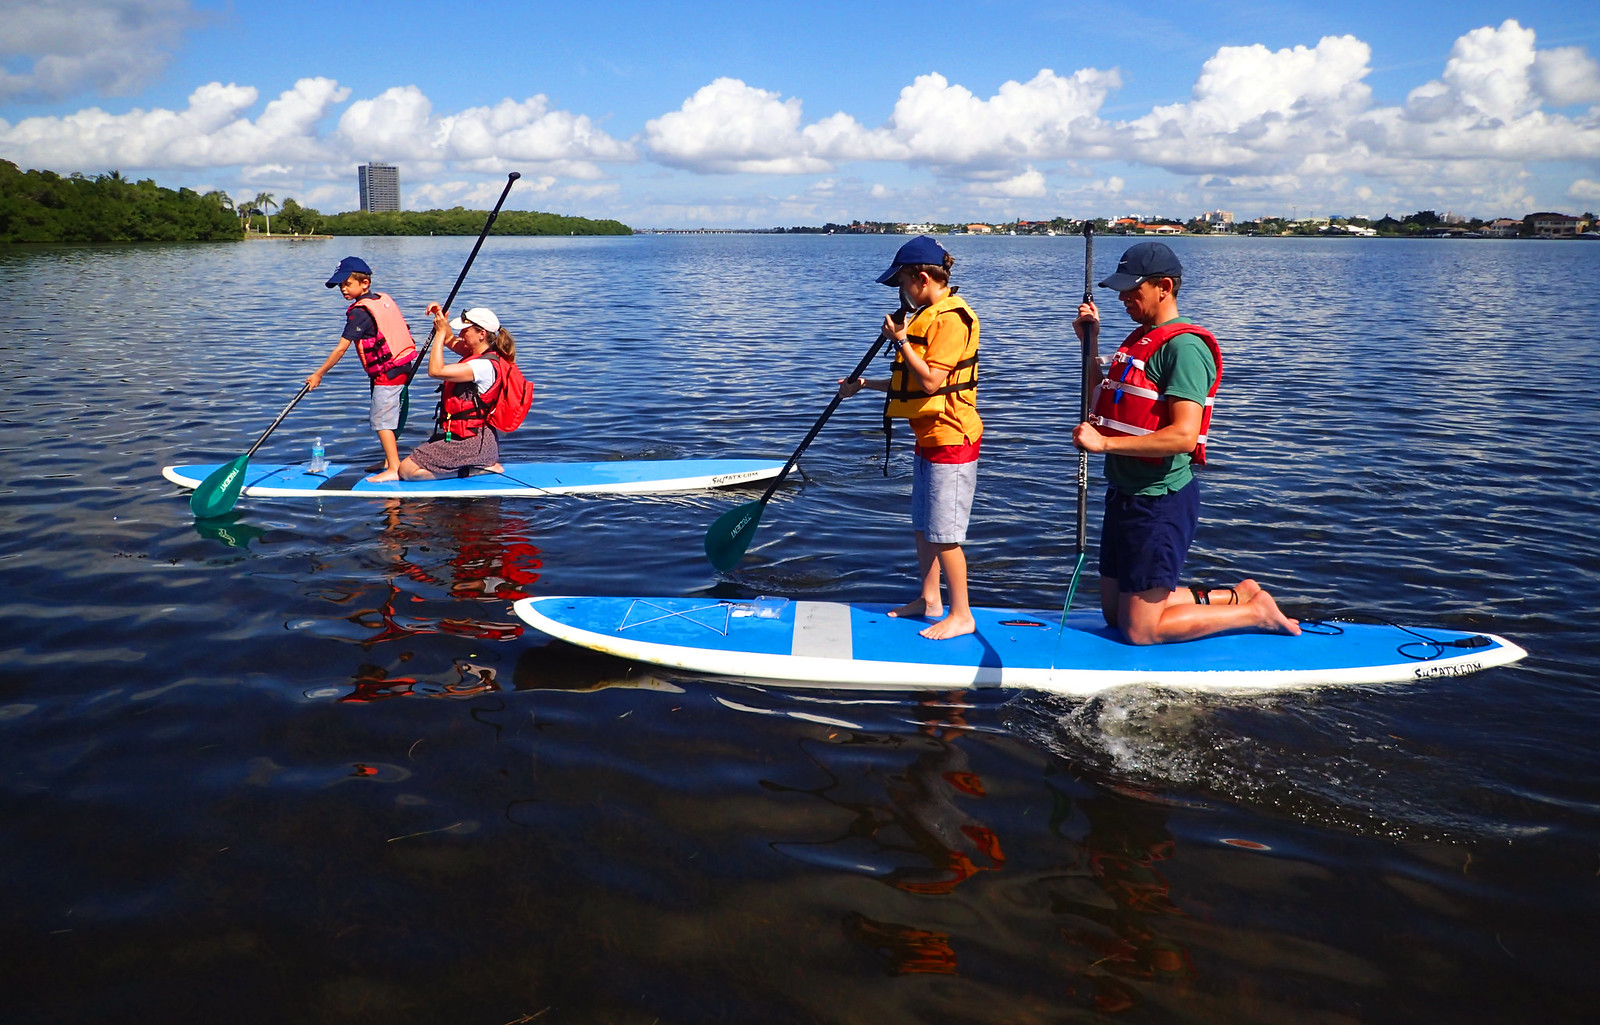 Patient parents allowing their kids to take the paddling job for awhile.